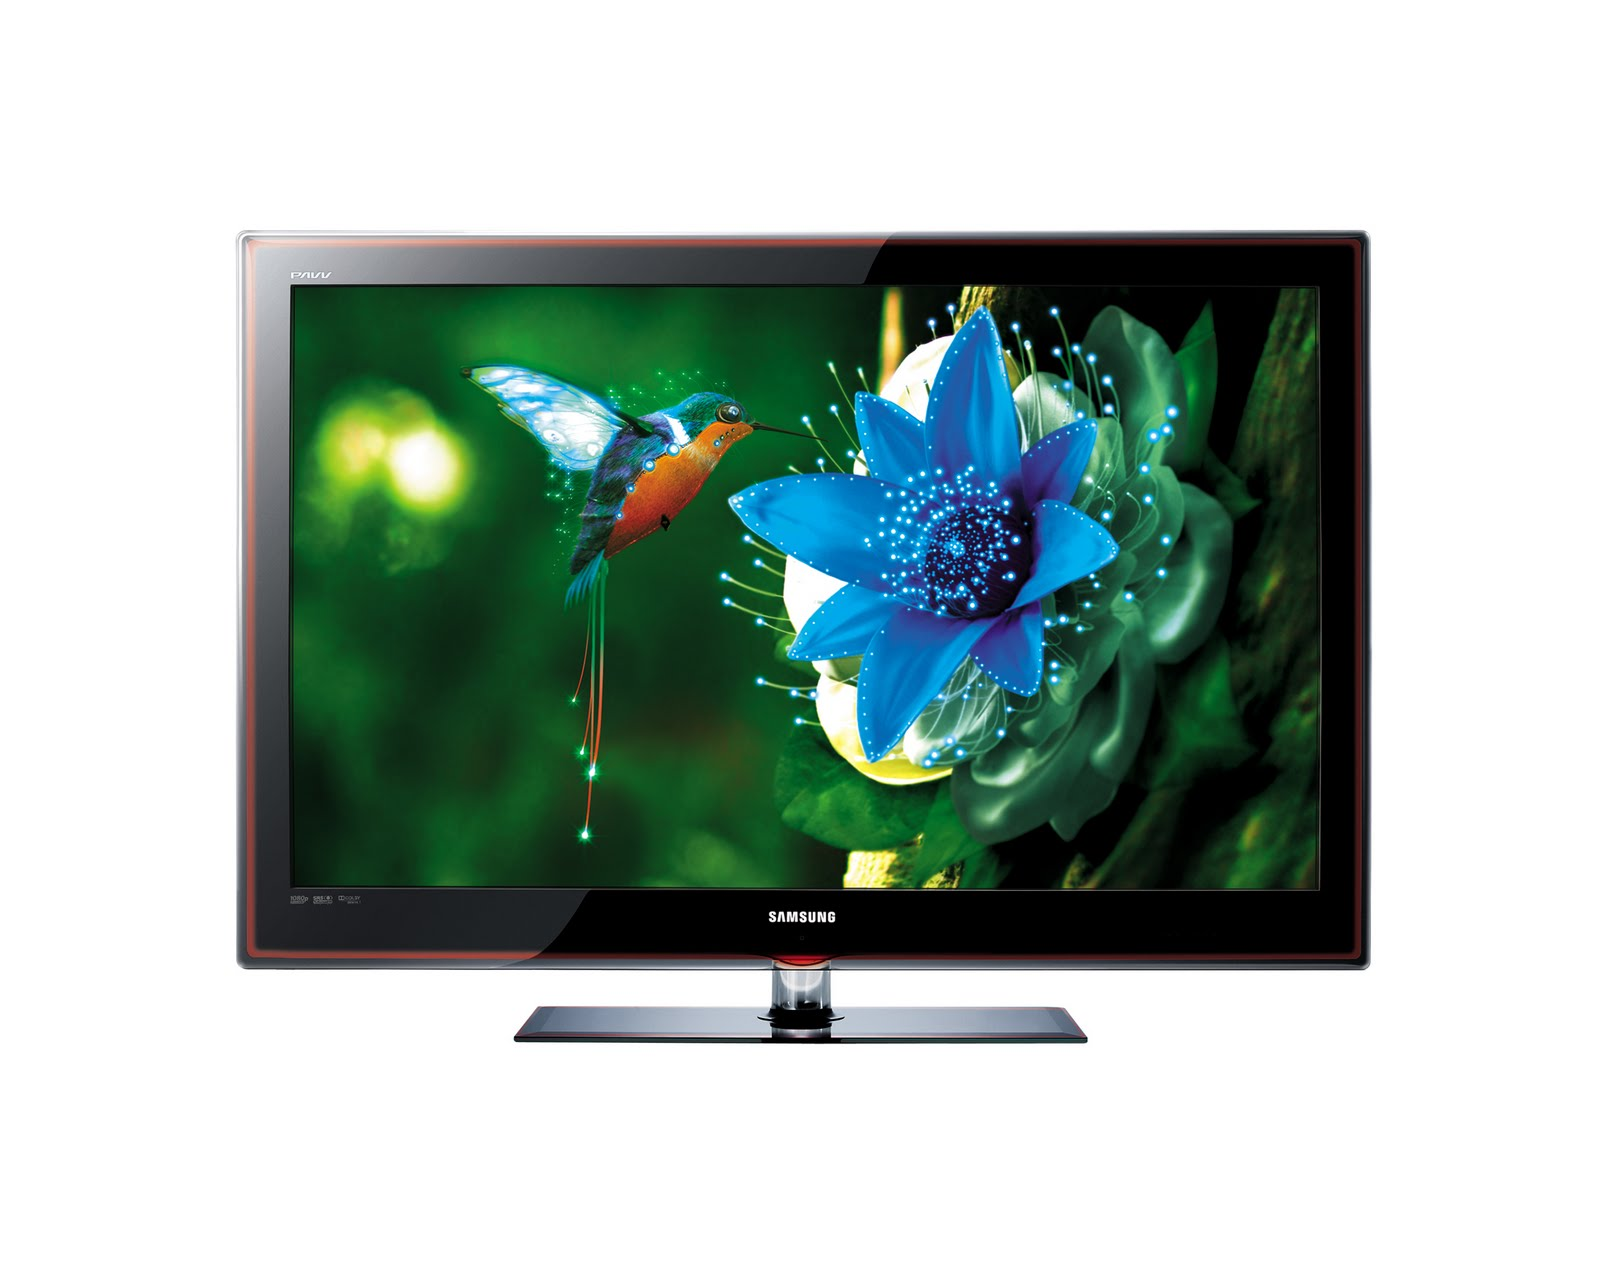 Stones and Flowers: The LED TVs...new era of Tele-vIsIoNiNg